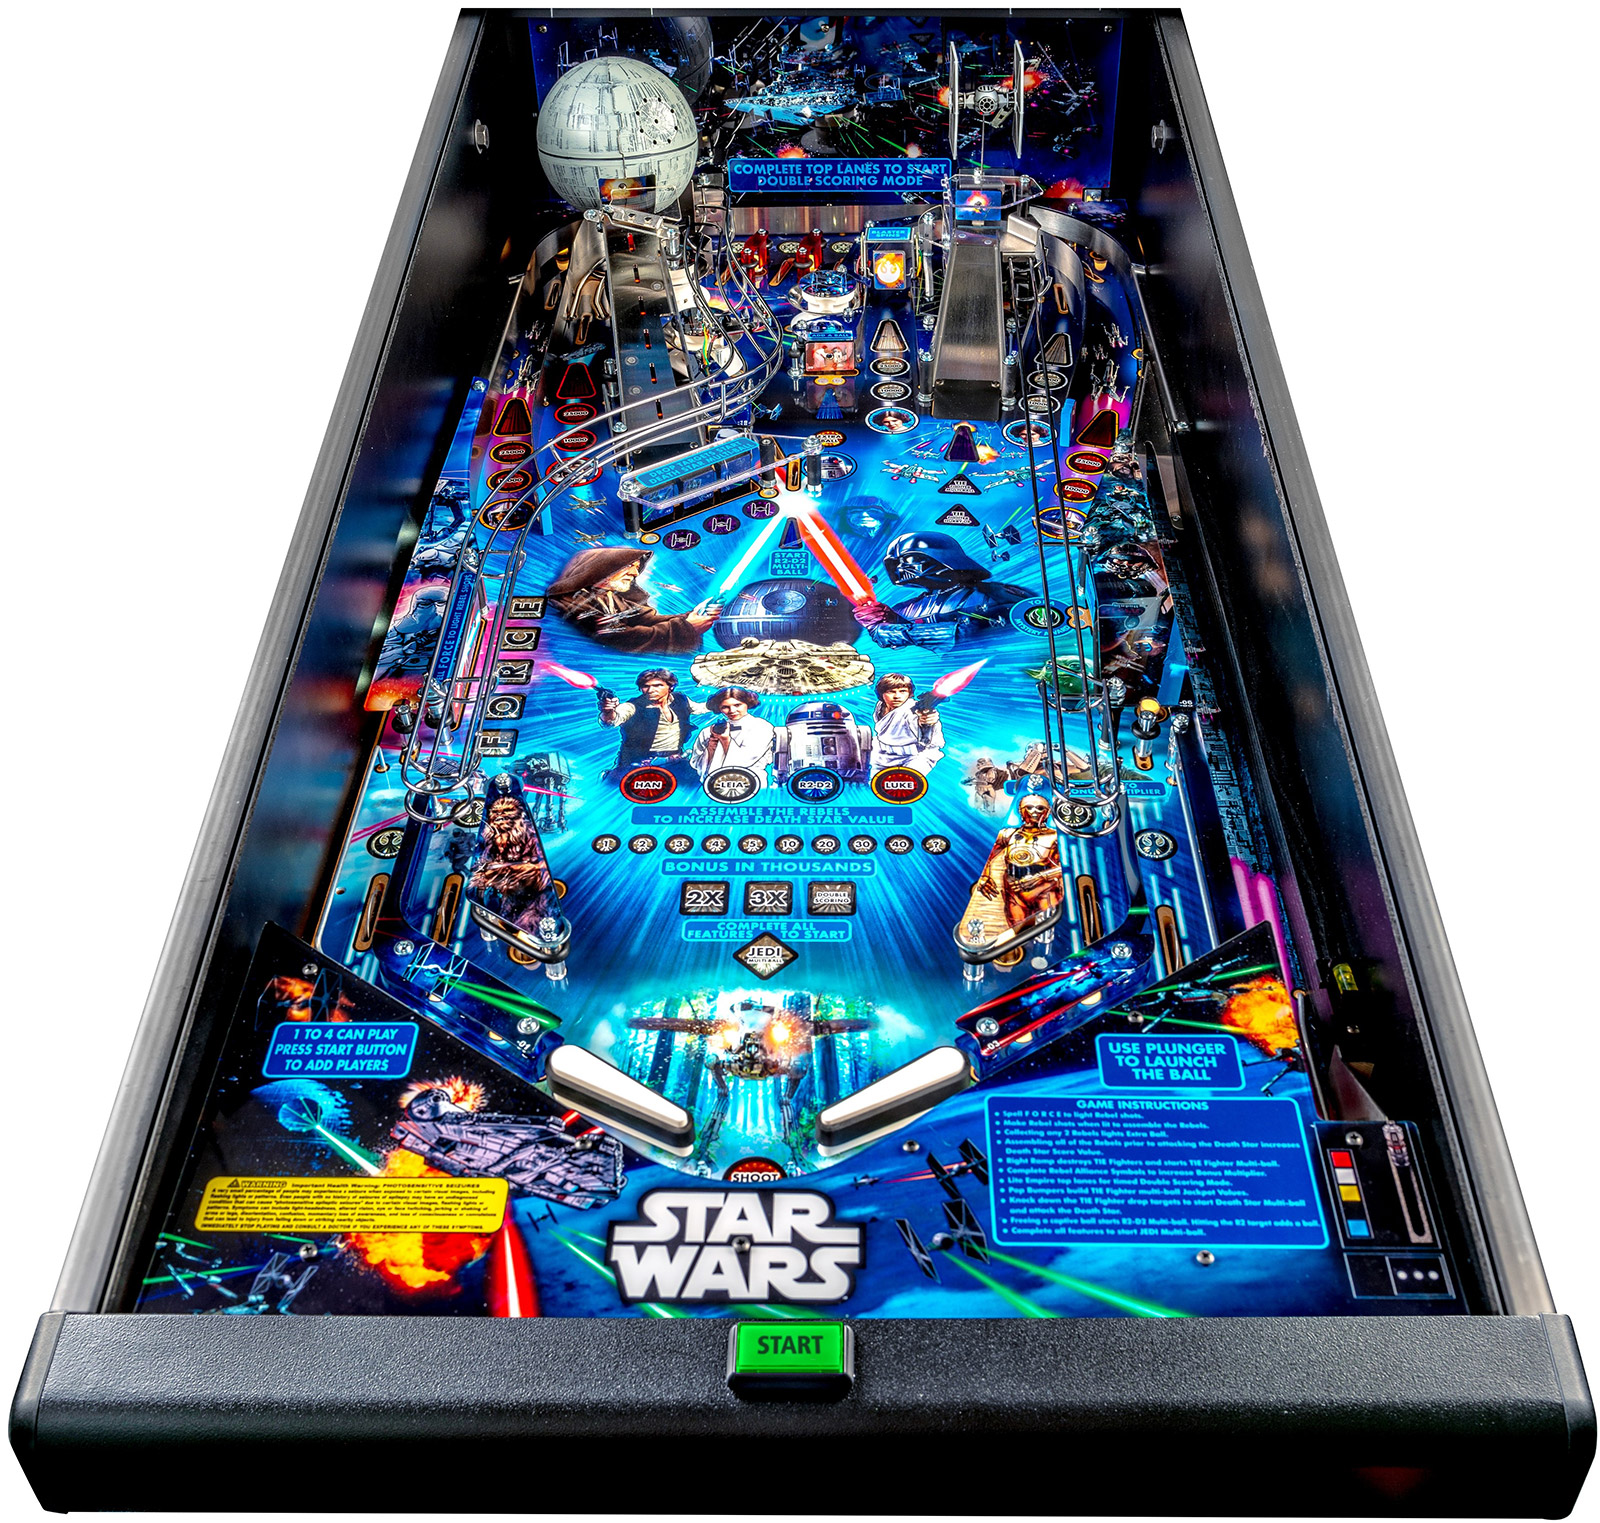 STAR WARS PIN – Welcome to Pinball News – First & Free